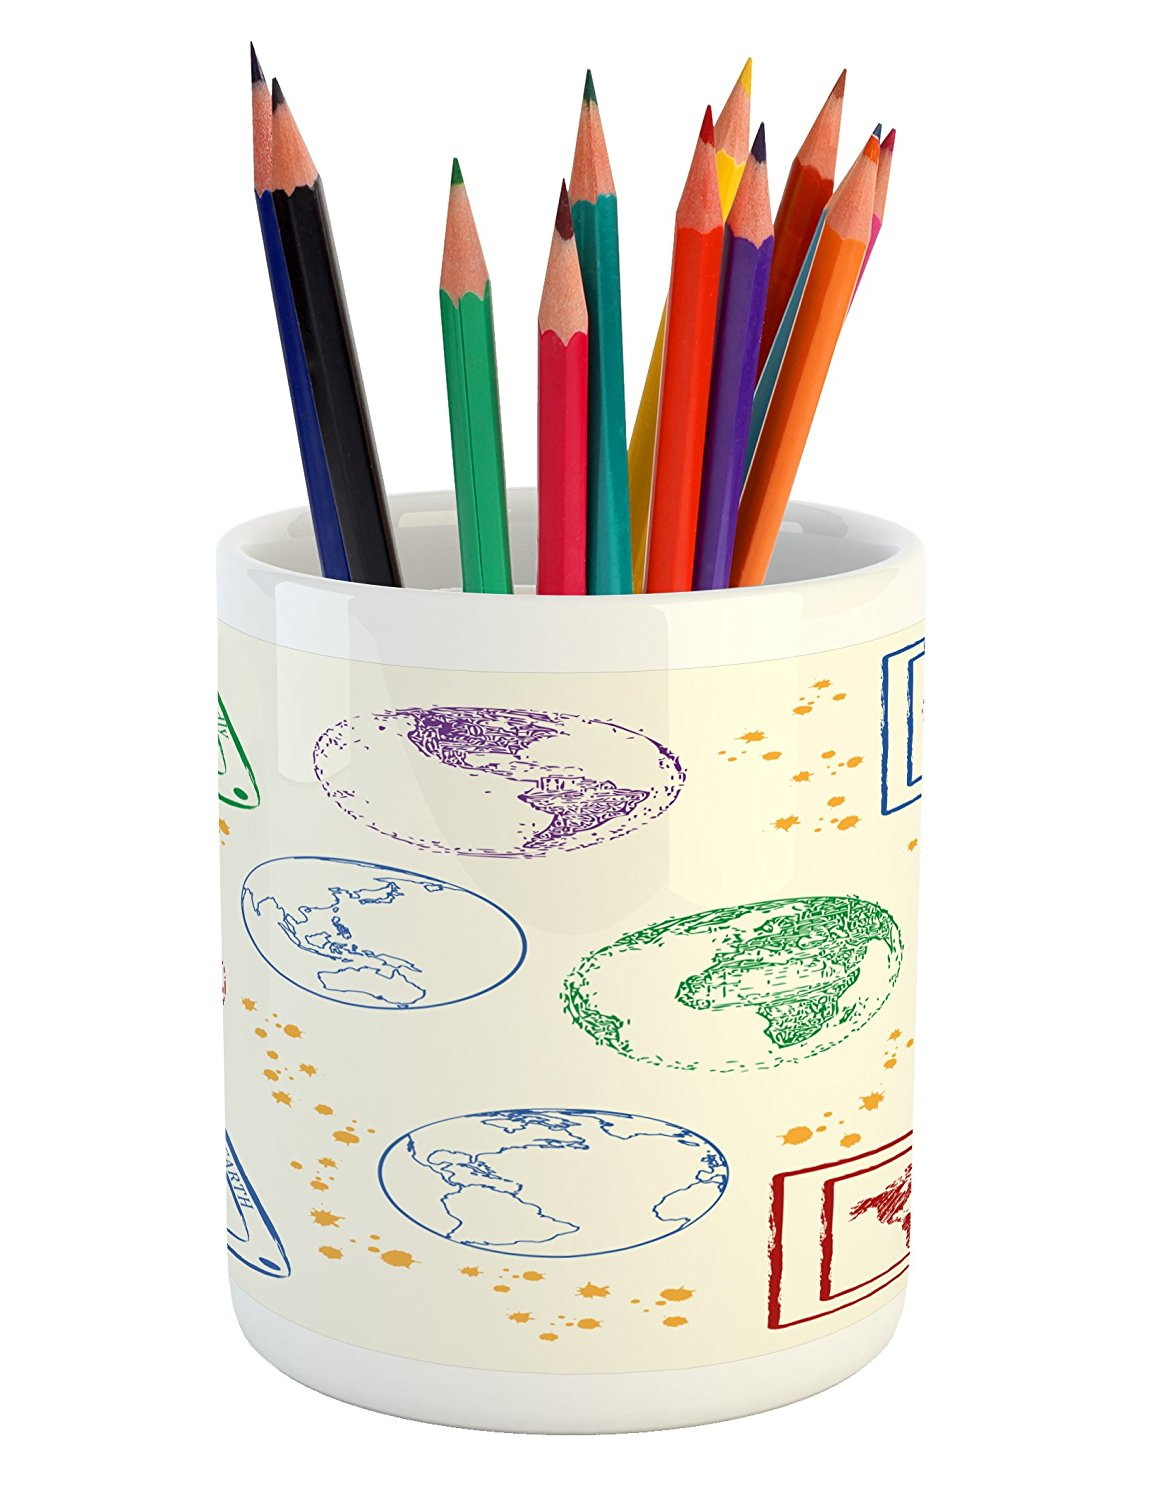 Lunarable World Map Pencil Pen Holder, Soft Colored Globe Shaped Maps of The World Earth Friendly Stars Pattern Image, Printed Ceramic Pencil Pen Holder for Desk Office Accessory, Multicolor